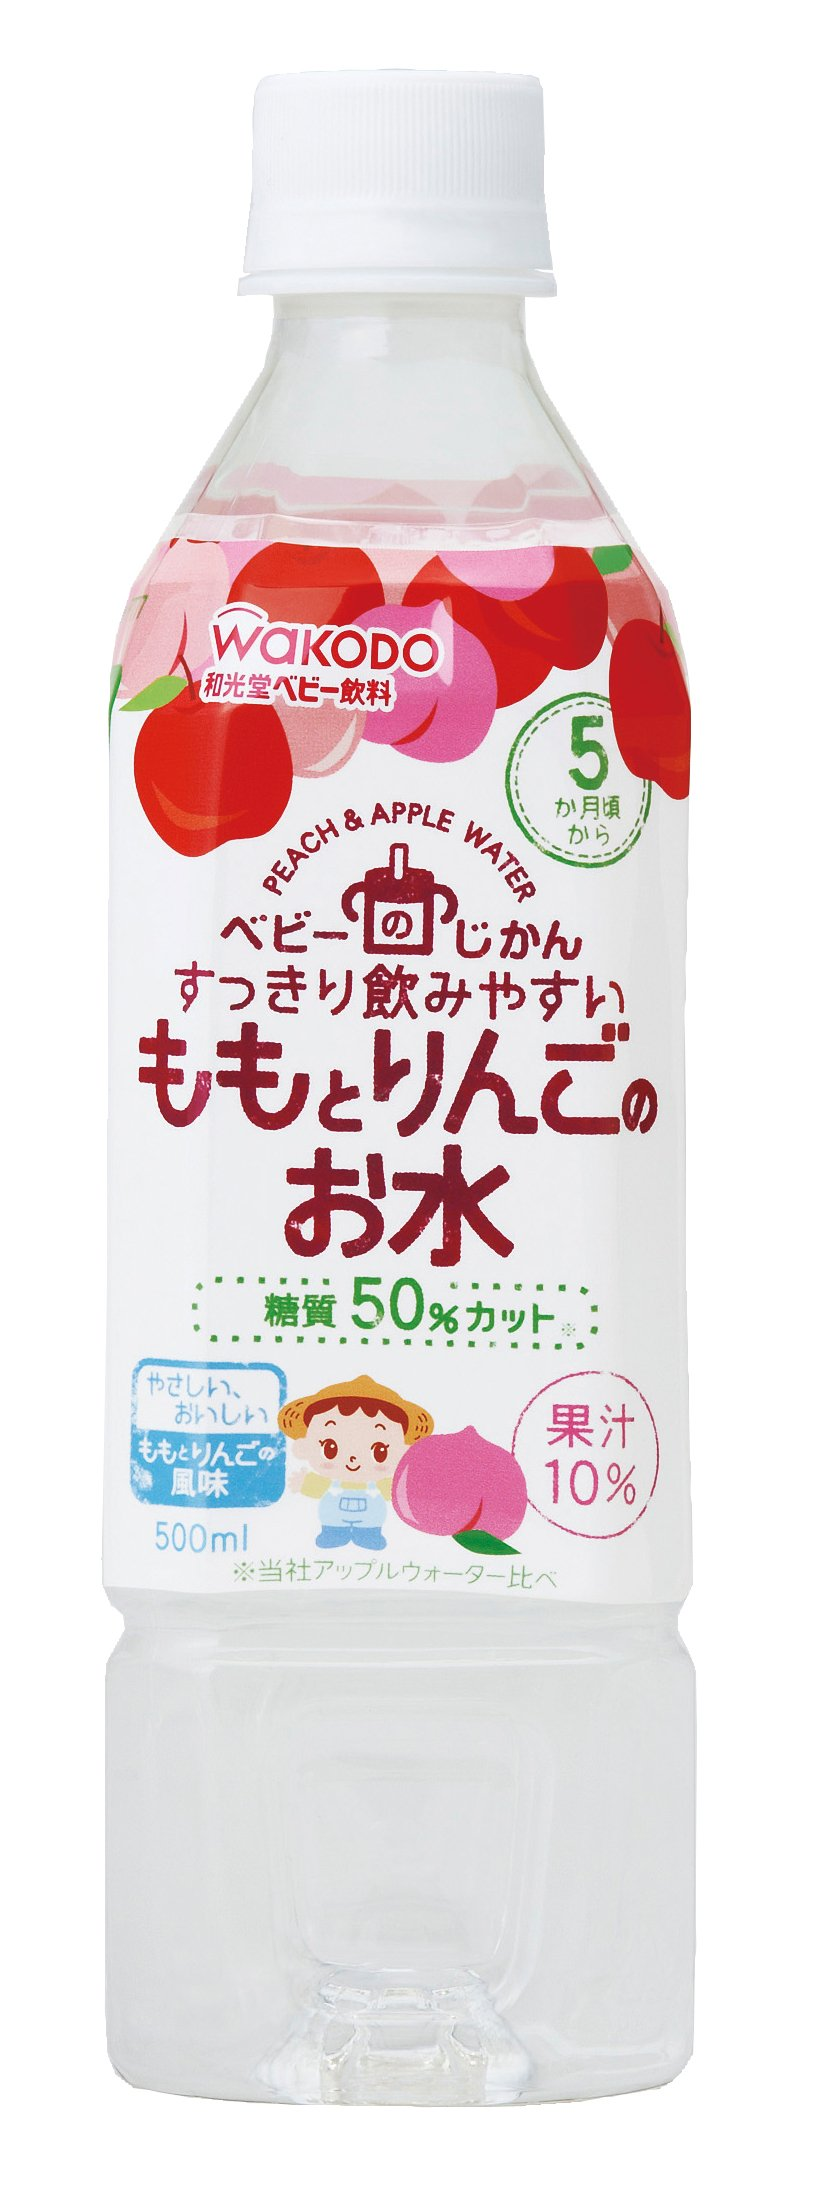 500mlX24 this your water undersecretary peach and apple of baby by Wakodo Co., Ltd.